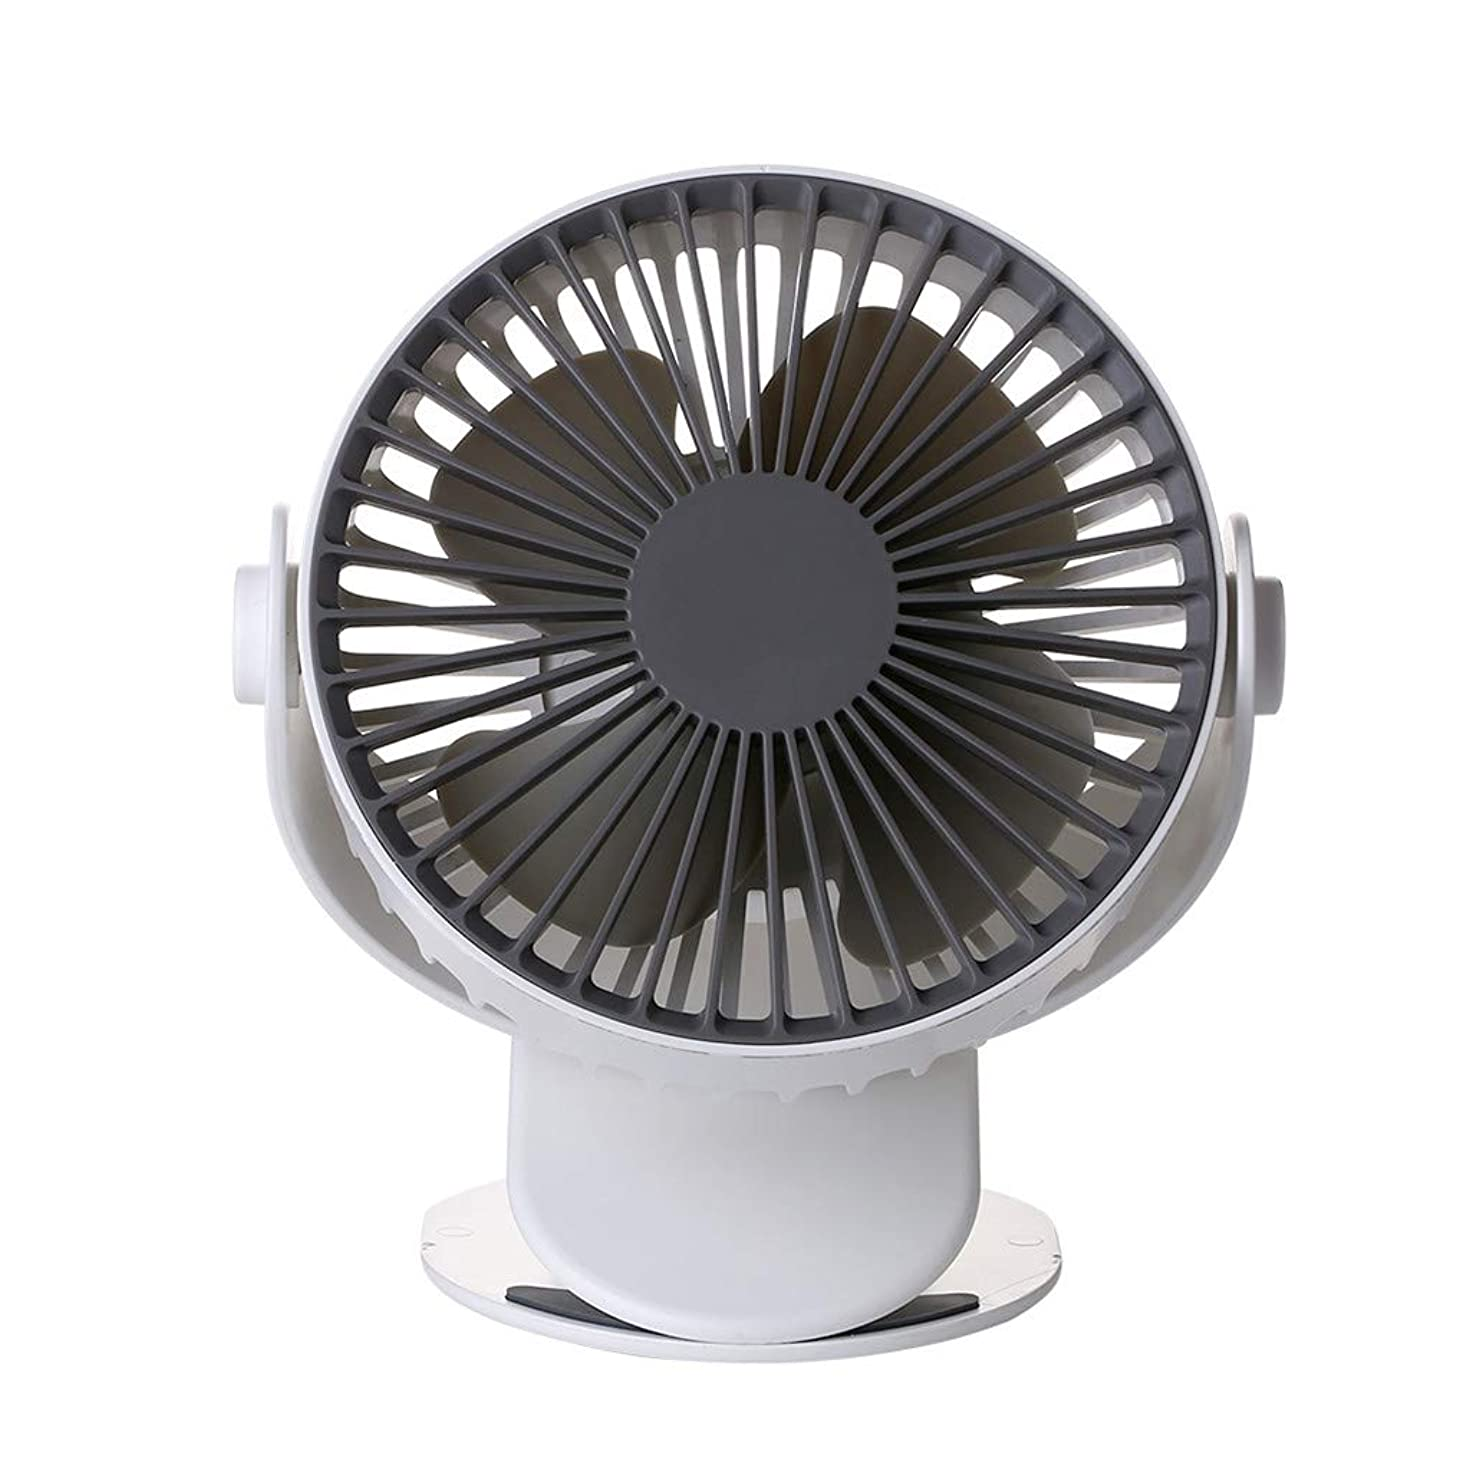 OrchidAmor USB Fan Mini Portable Desktop Cooling Desk Quiet Fan Office Computer 2019